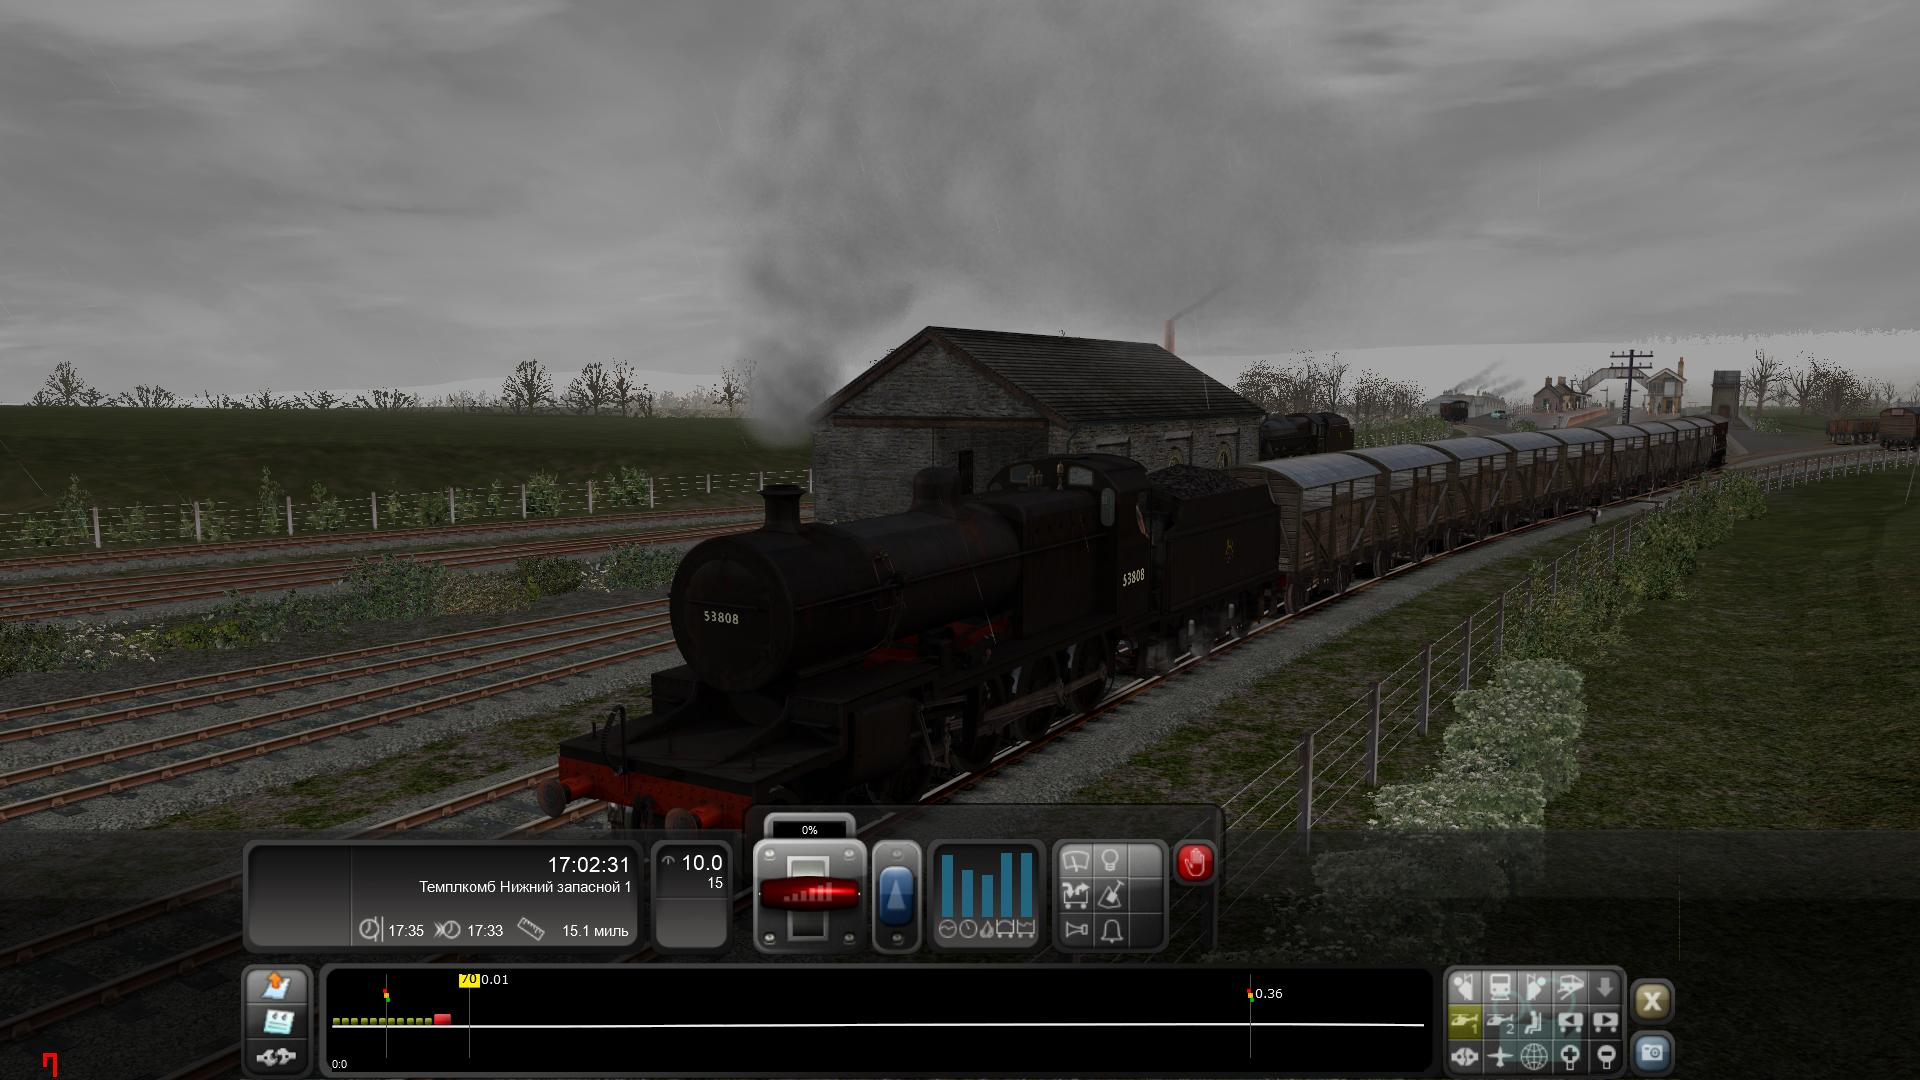 http://screenshot.ru/upload/images/2018/03/09/RailWorksProc22018-03-0919-46-00-917e0f4.jpg